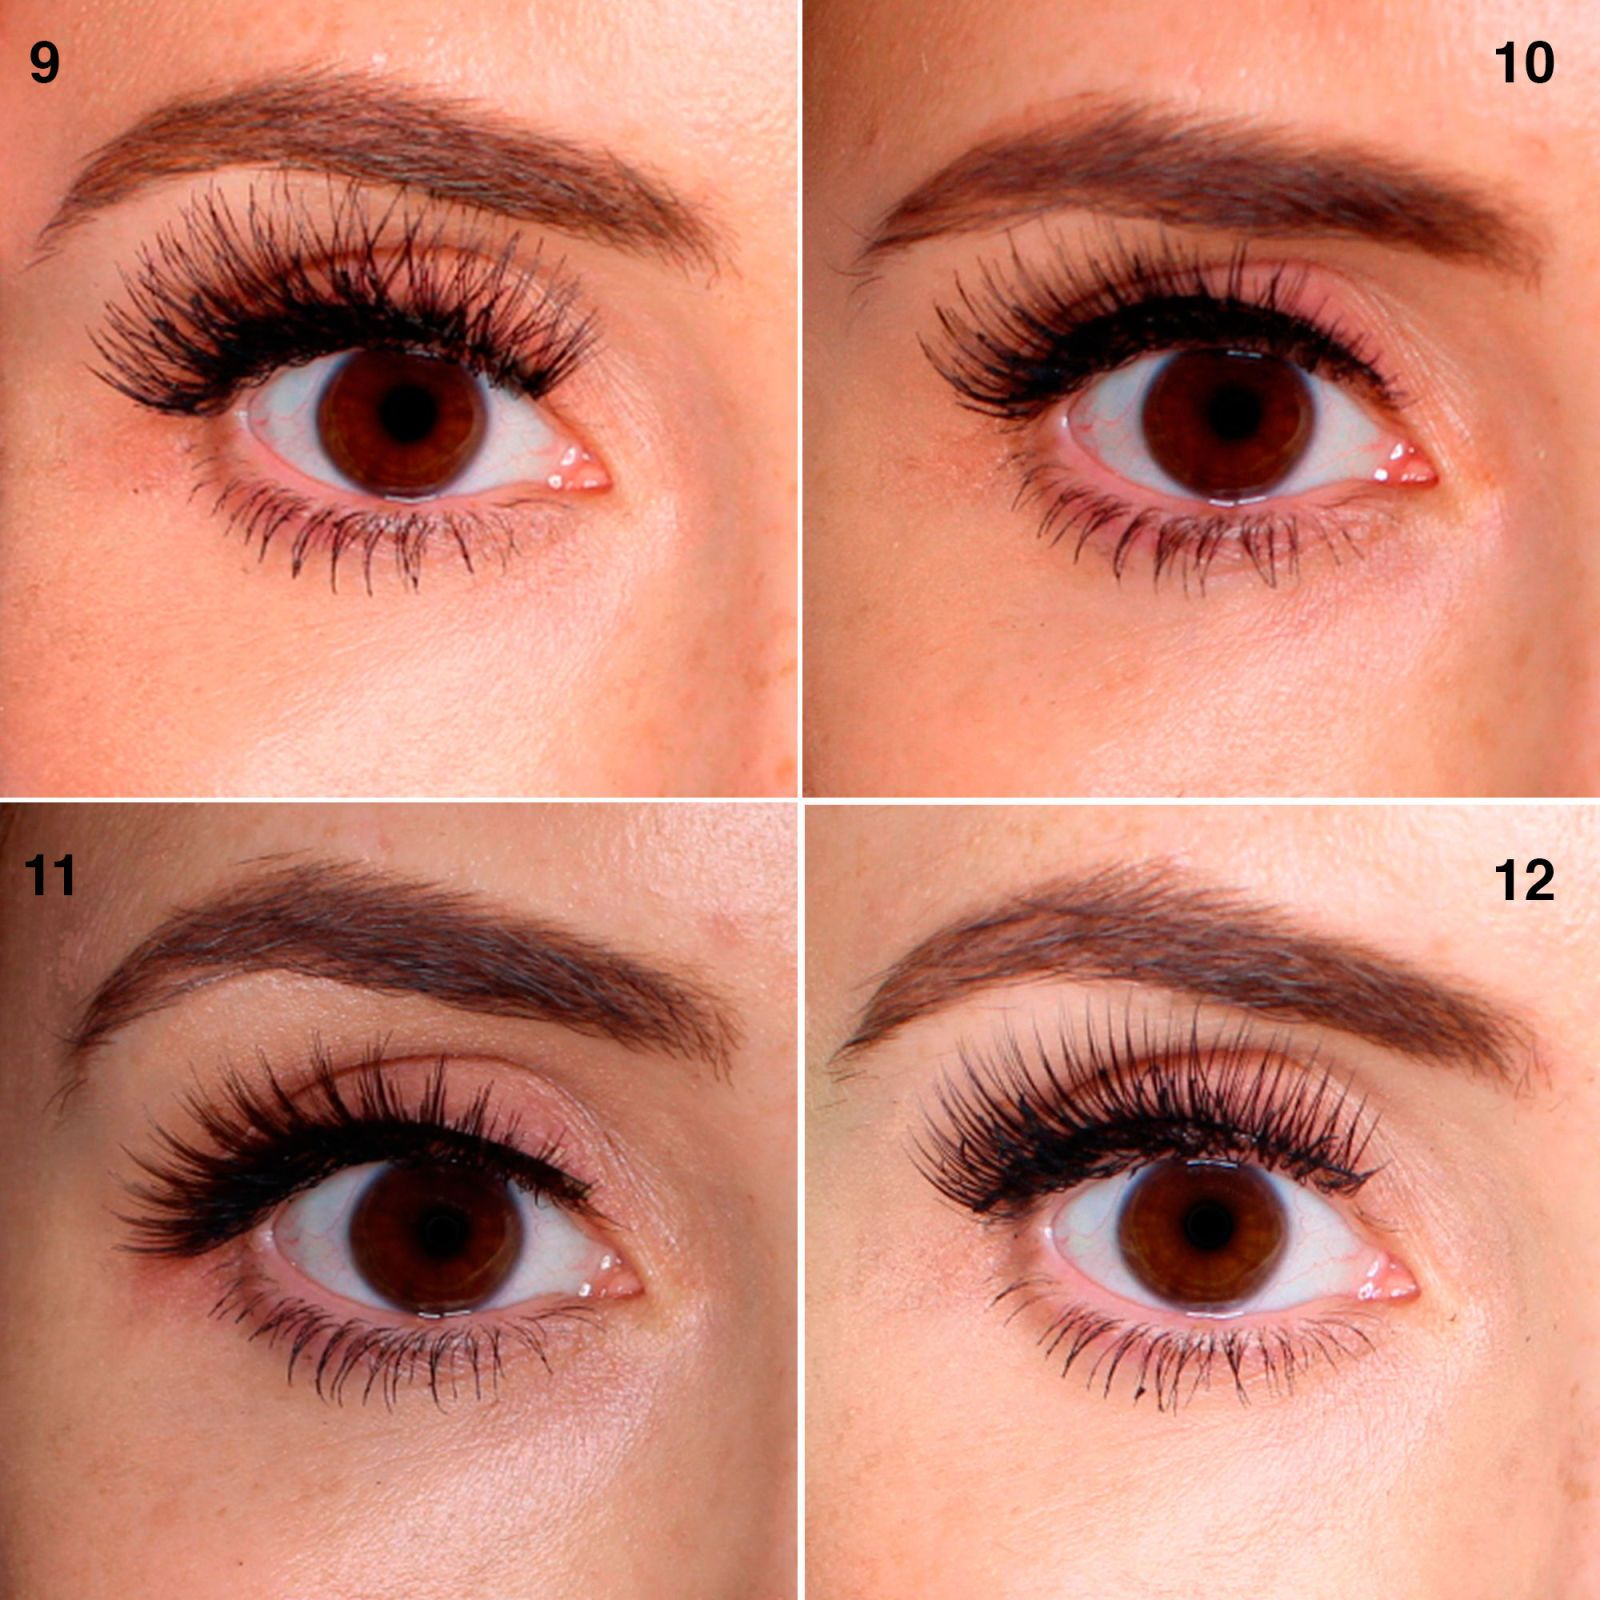 9354bb4a113 100 false lashes tested on ONE eye: picture reviews #10-Ardell Natural  Style 110